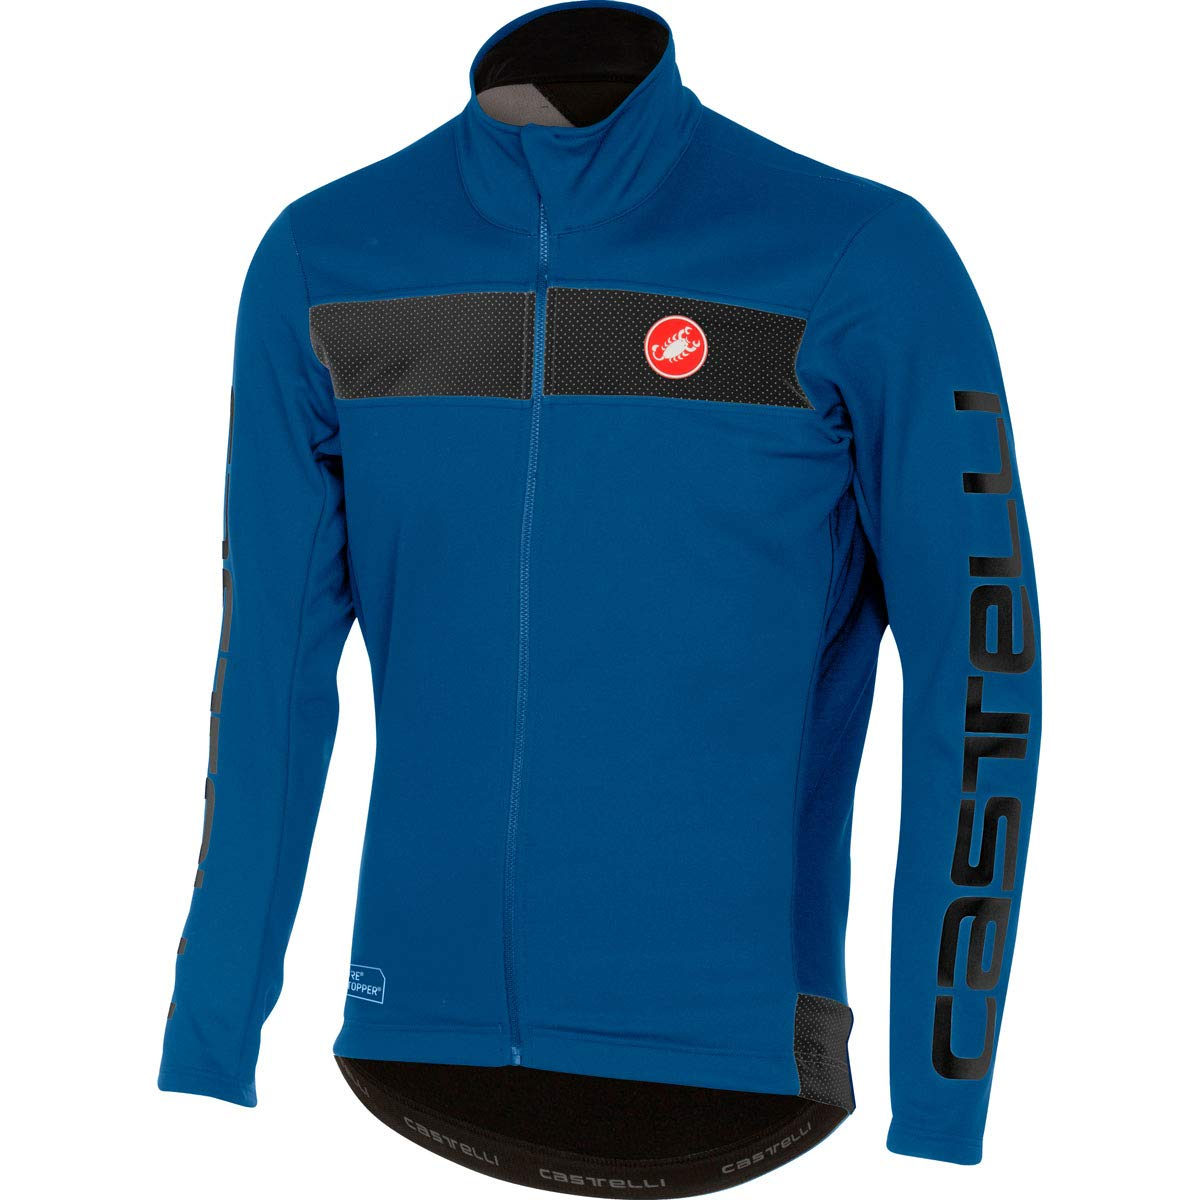 Amazon.com : Castelli Raddoppia Jacket - Mens : Clothing